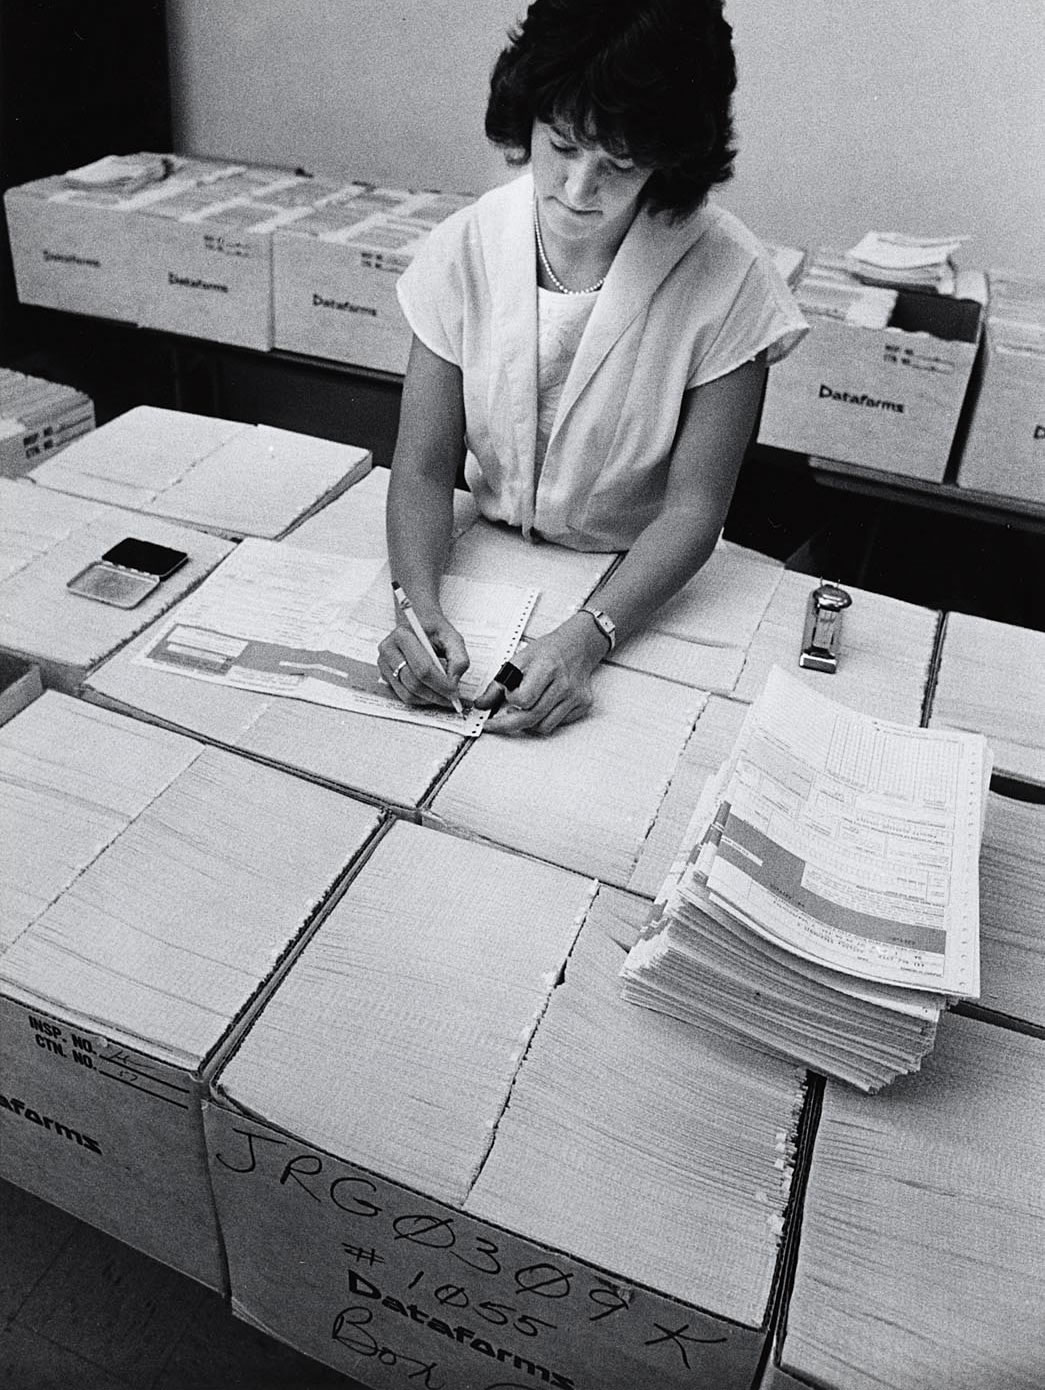 1980s photo of student with many boxes of paper registration forms.